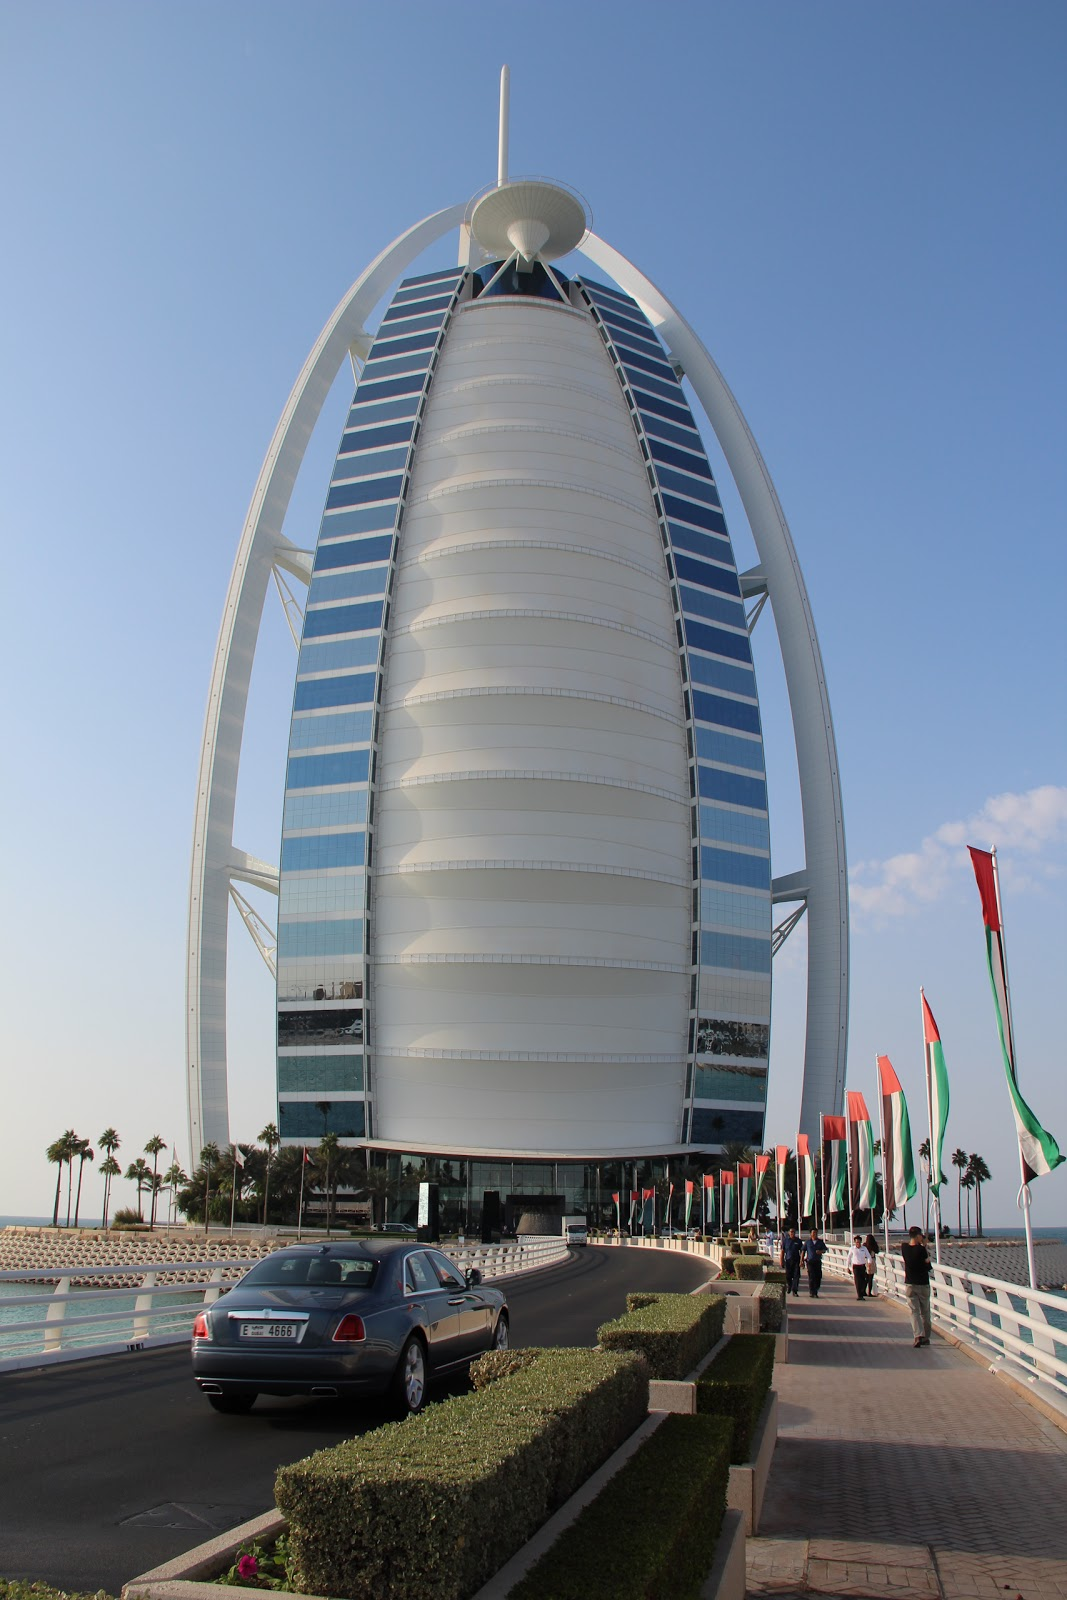 Beumer burj al arab the ultimate high tea dubai uae for Burj al arab reservation